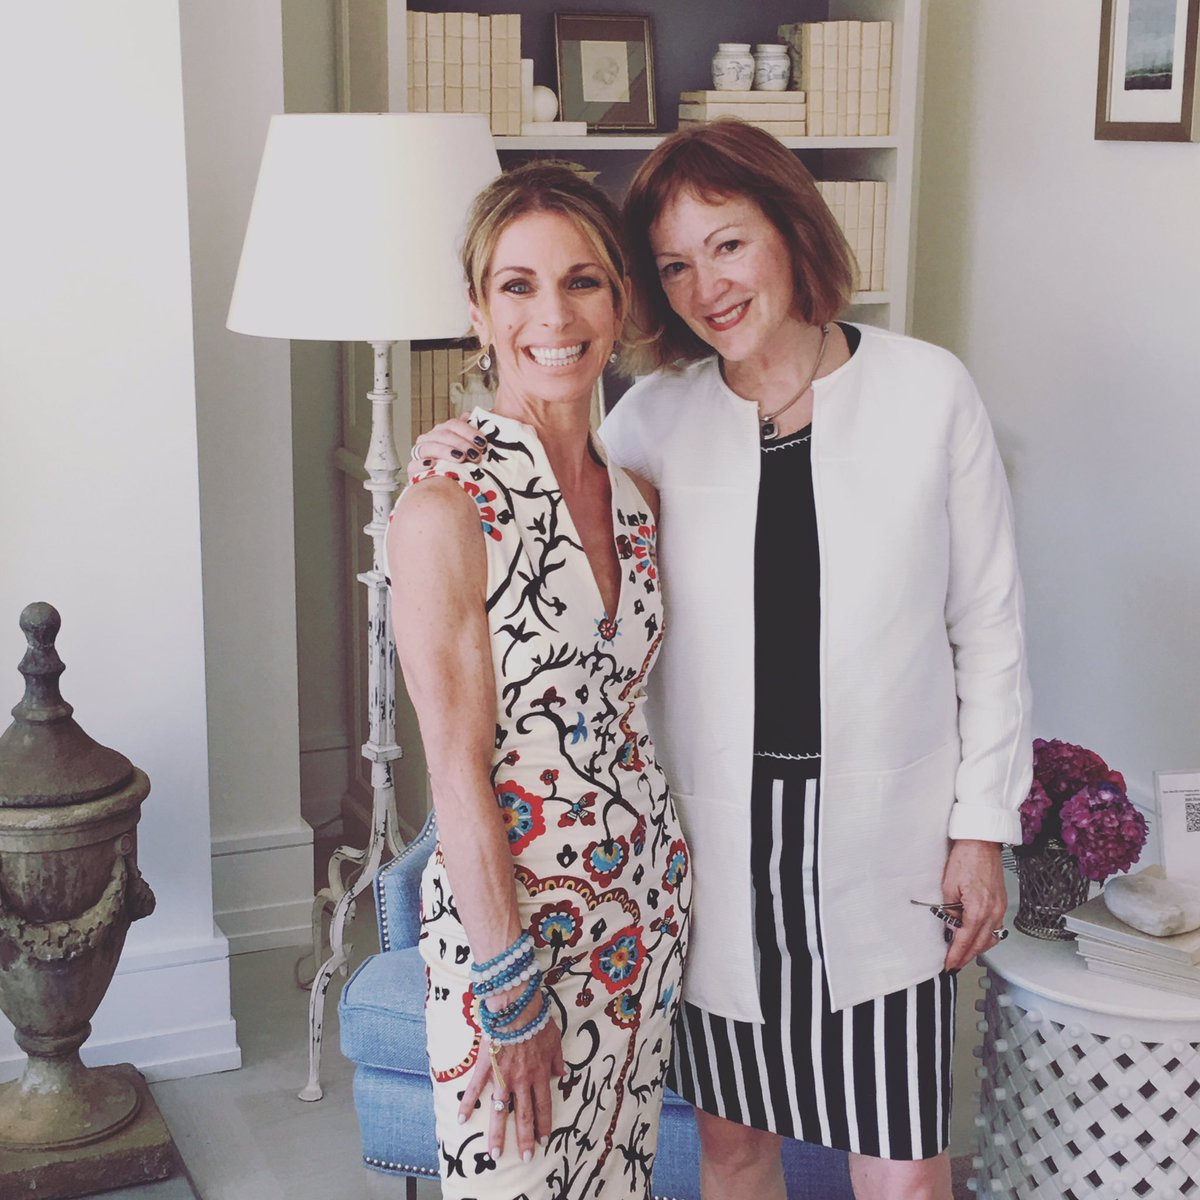 The opening gala for the @traditionalhome Hamptons Show Hse was fabulous. Here w/ @KateSinger https://t.co/dtOEwXk3Kr